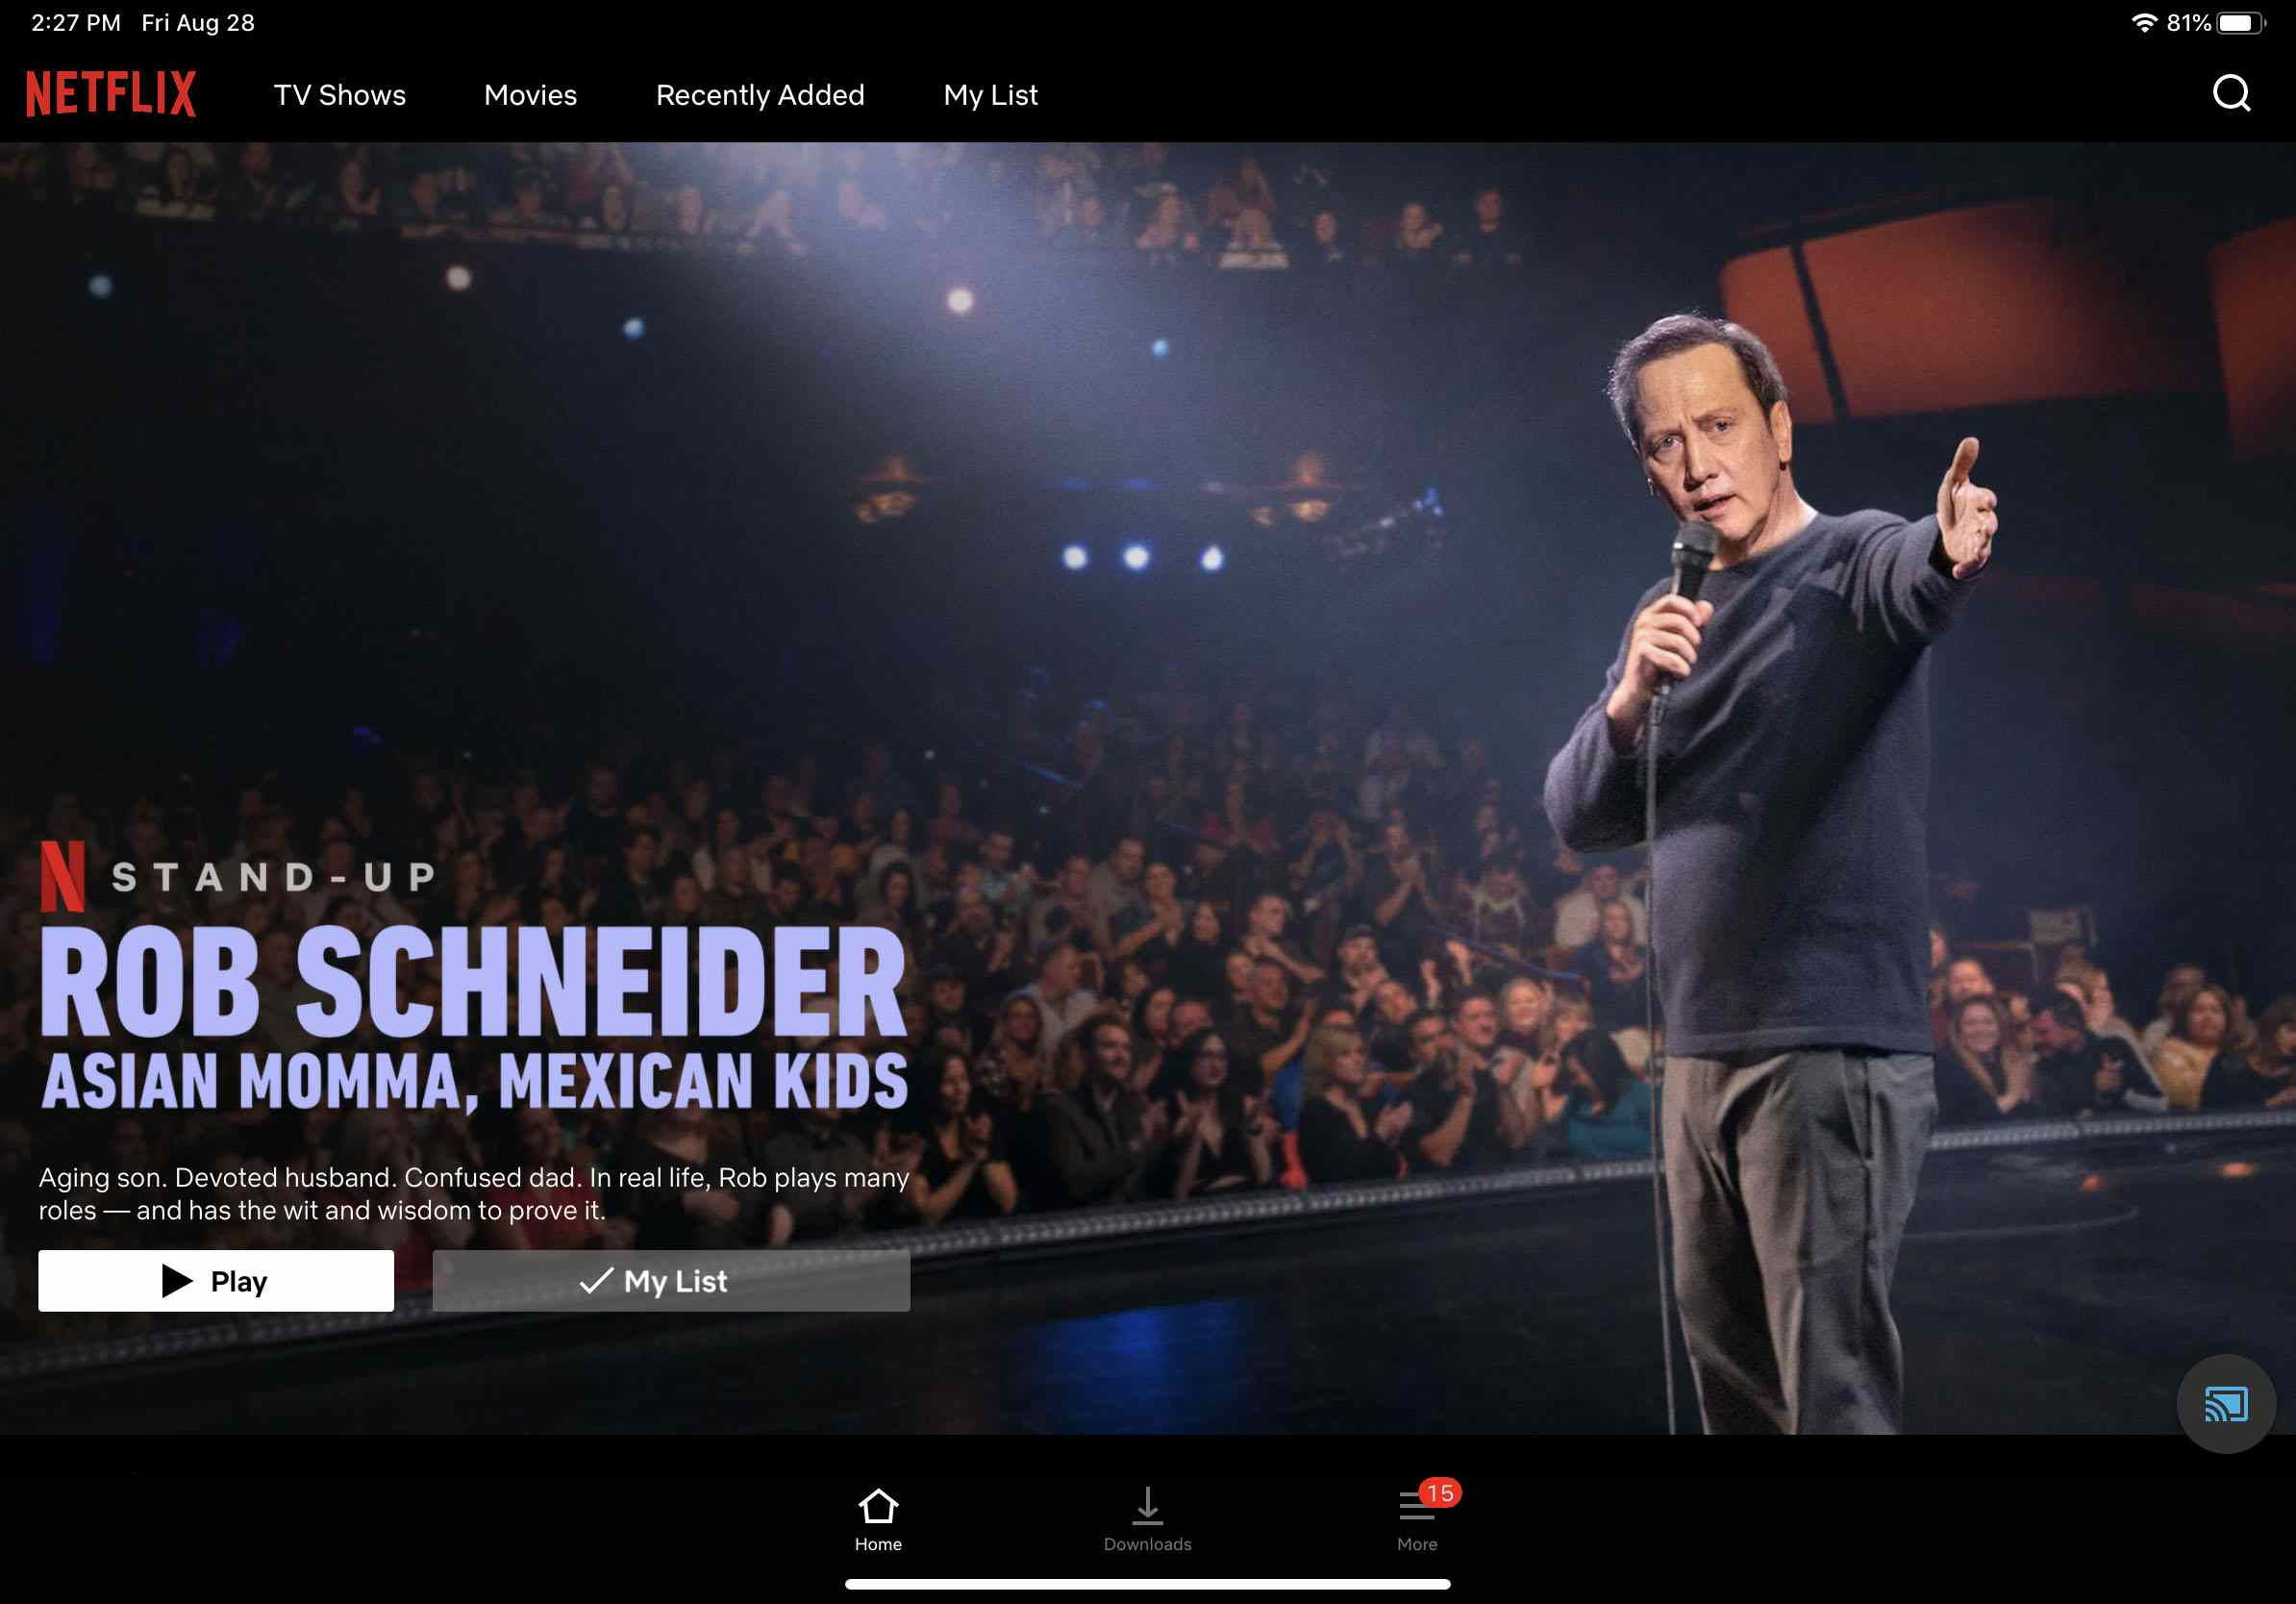 A screenshot of the Netflix home screen with the Cast icon turned blue.